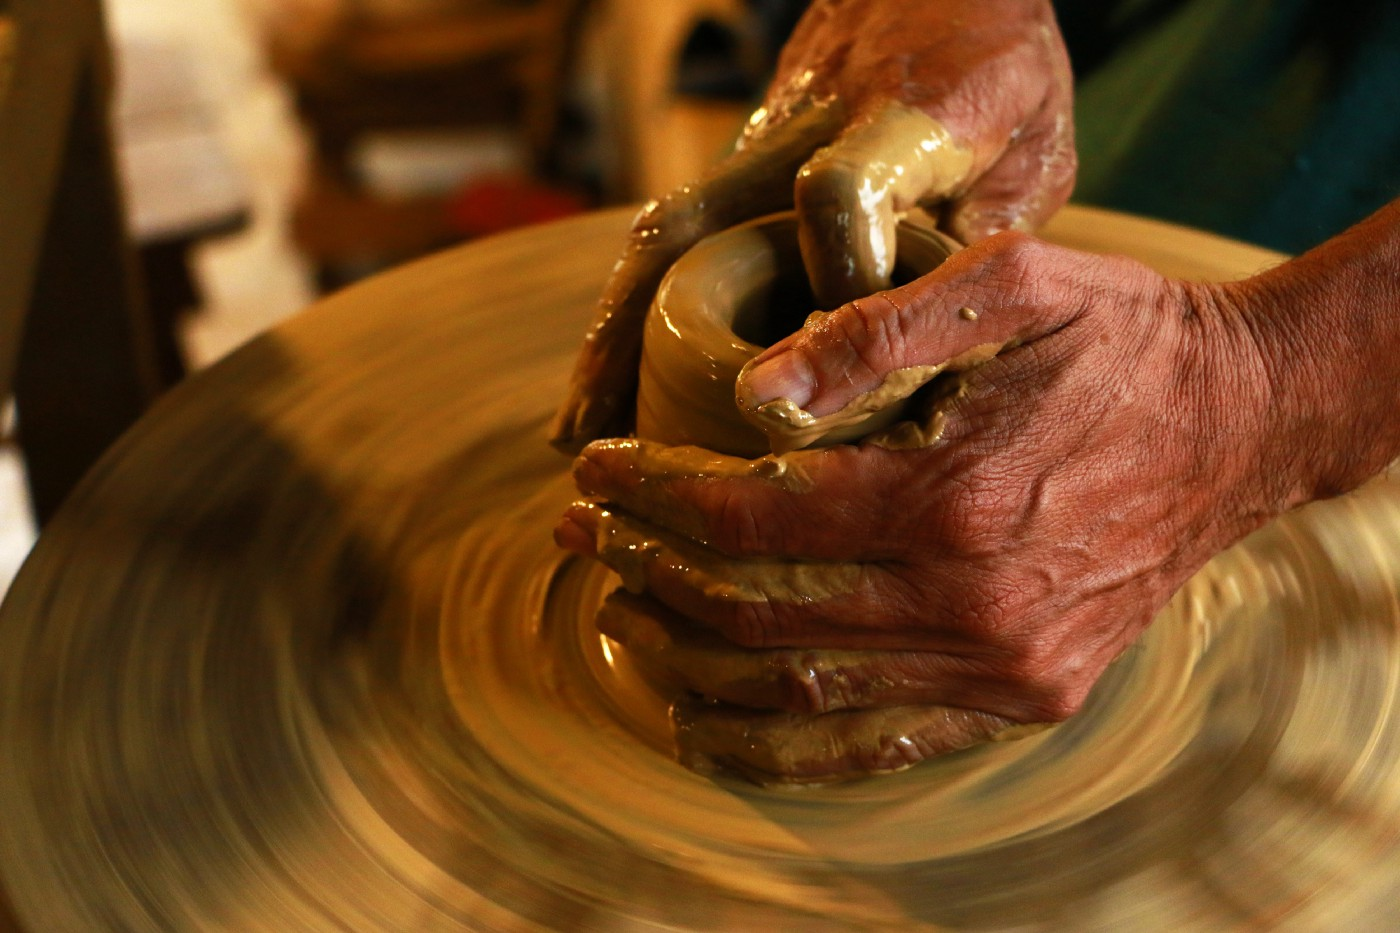 Image of a potter's hands giving shape to clay